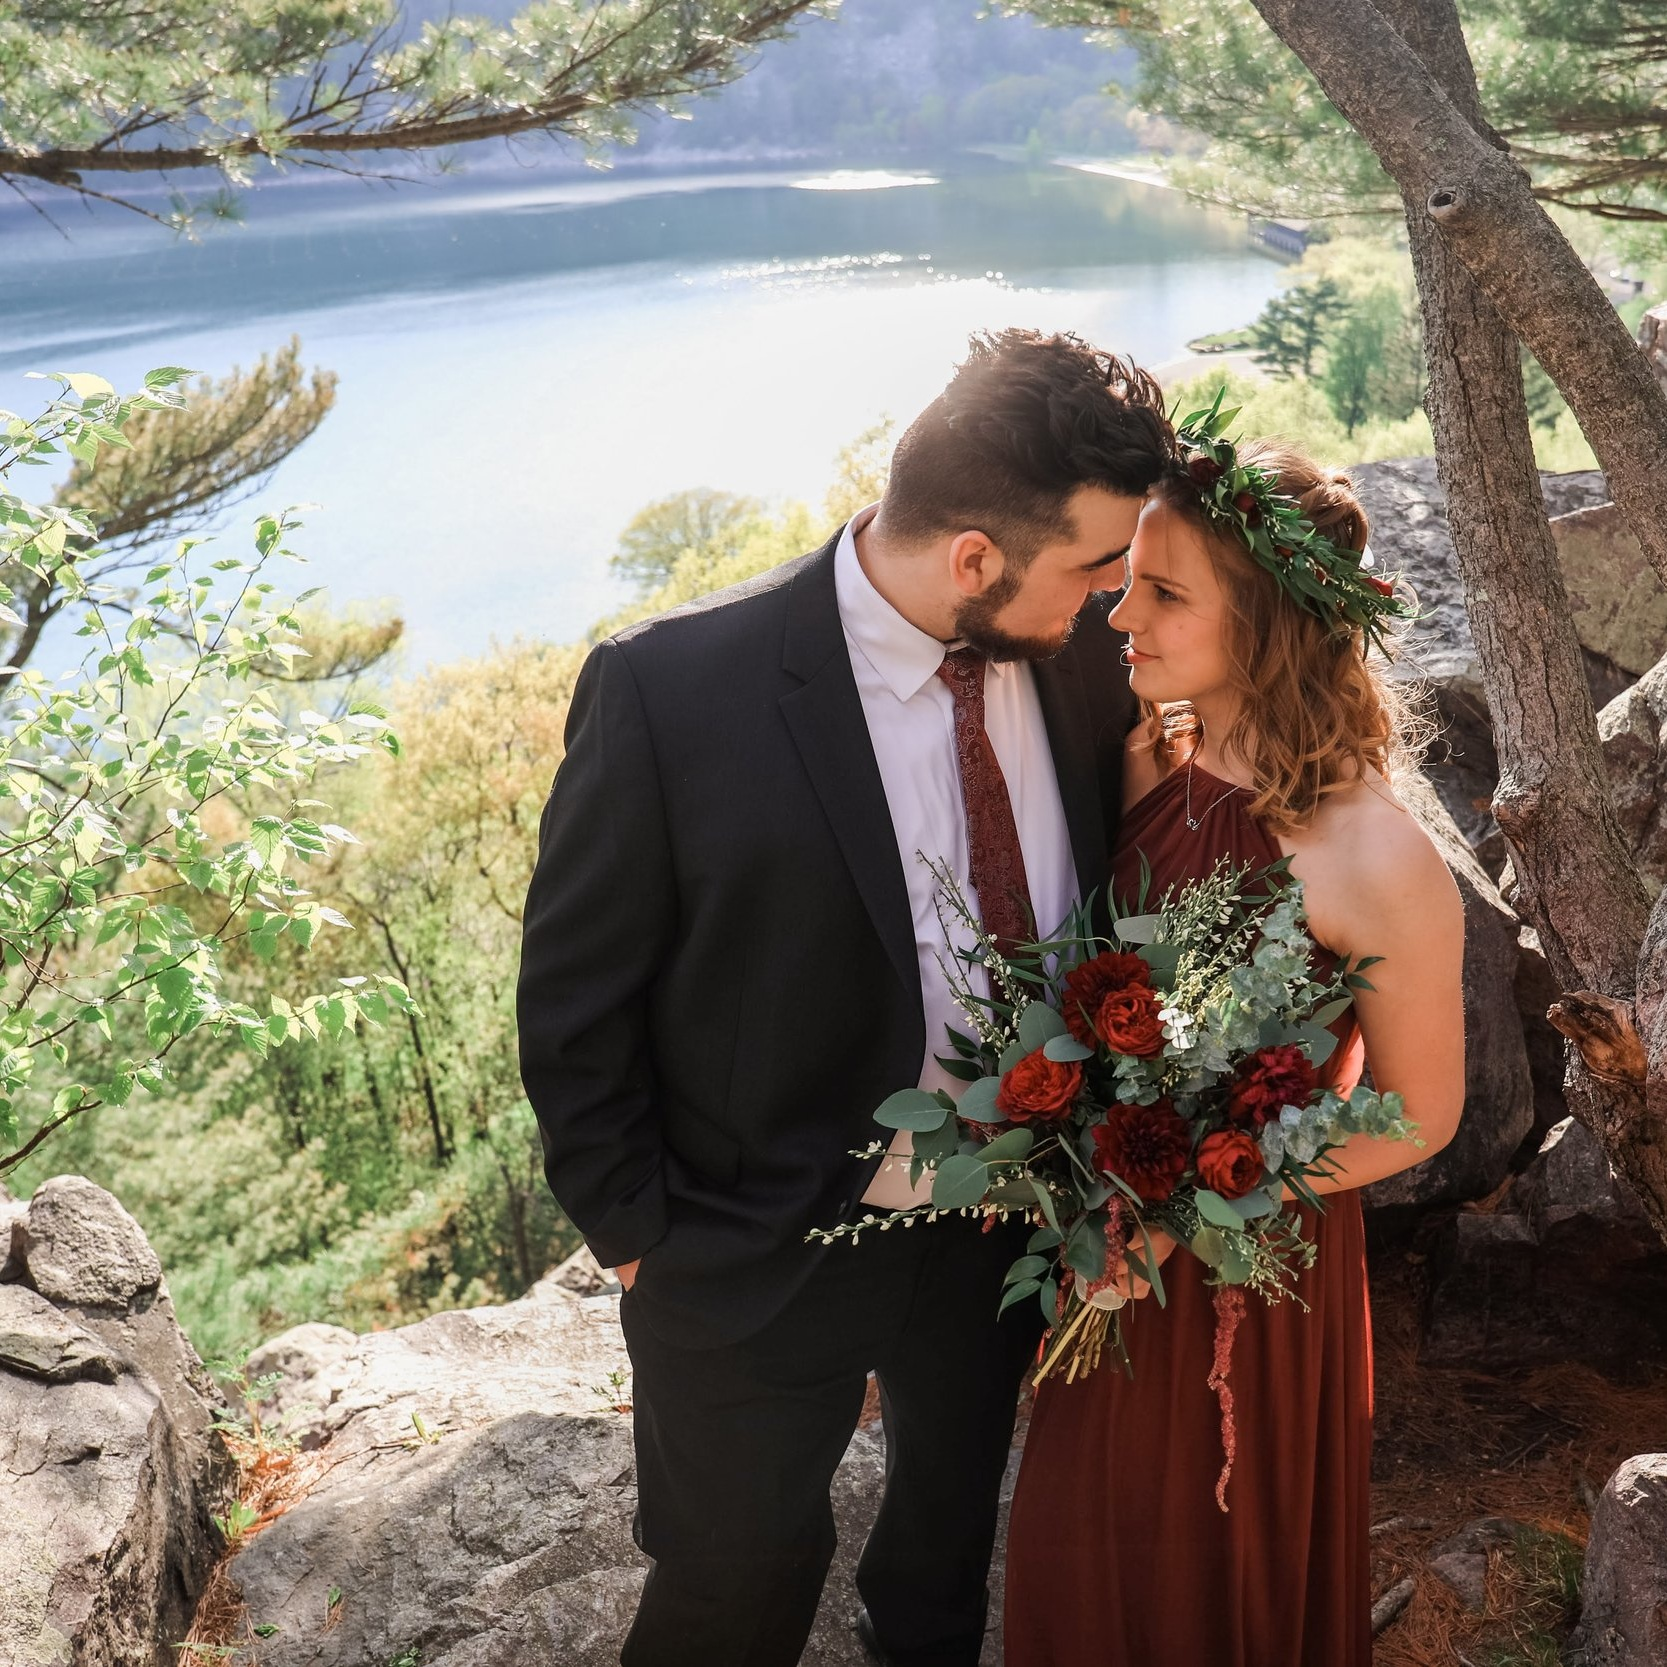 Bride and groom after their elopment on a cliff in Devils Lake State Park in Baraboo Wisconsin - Milwaukee and Wisconsin Micro Wedding Planned by Natural Elegance LLC - Photo by Memory Lane Photography.jpg